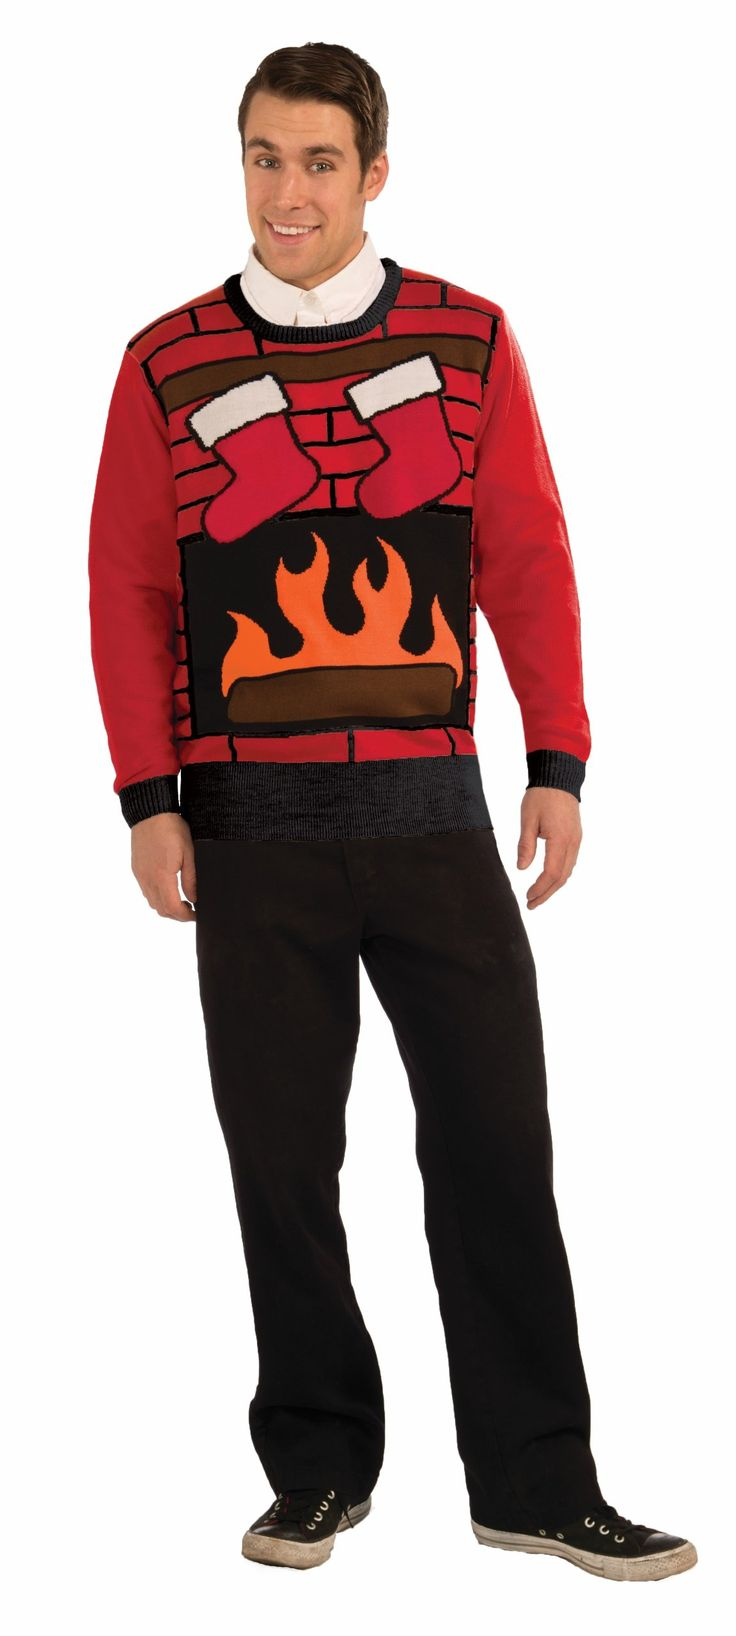 623 best UGLY Christmas Sweater Party images on Pinterest ...